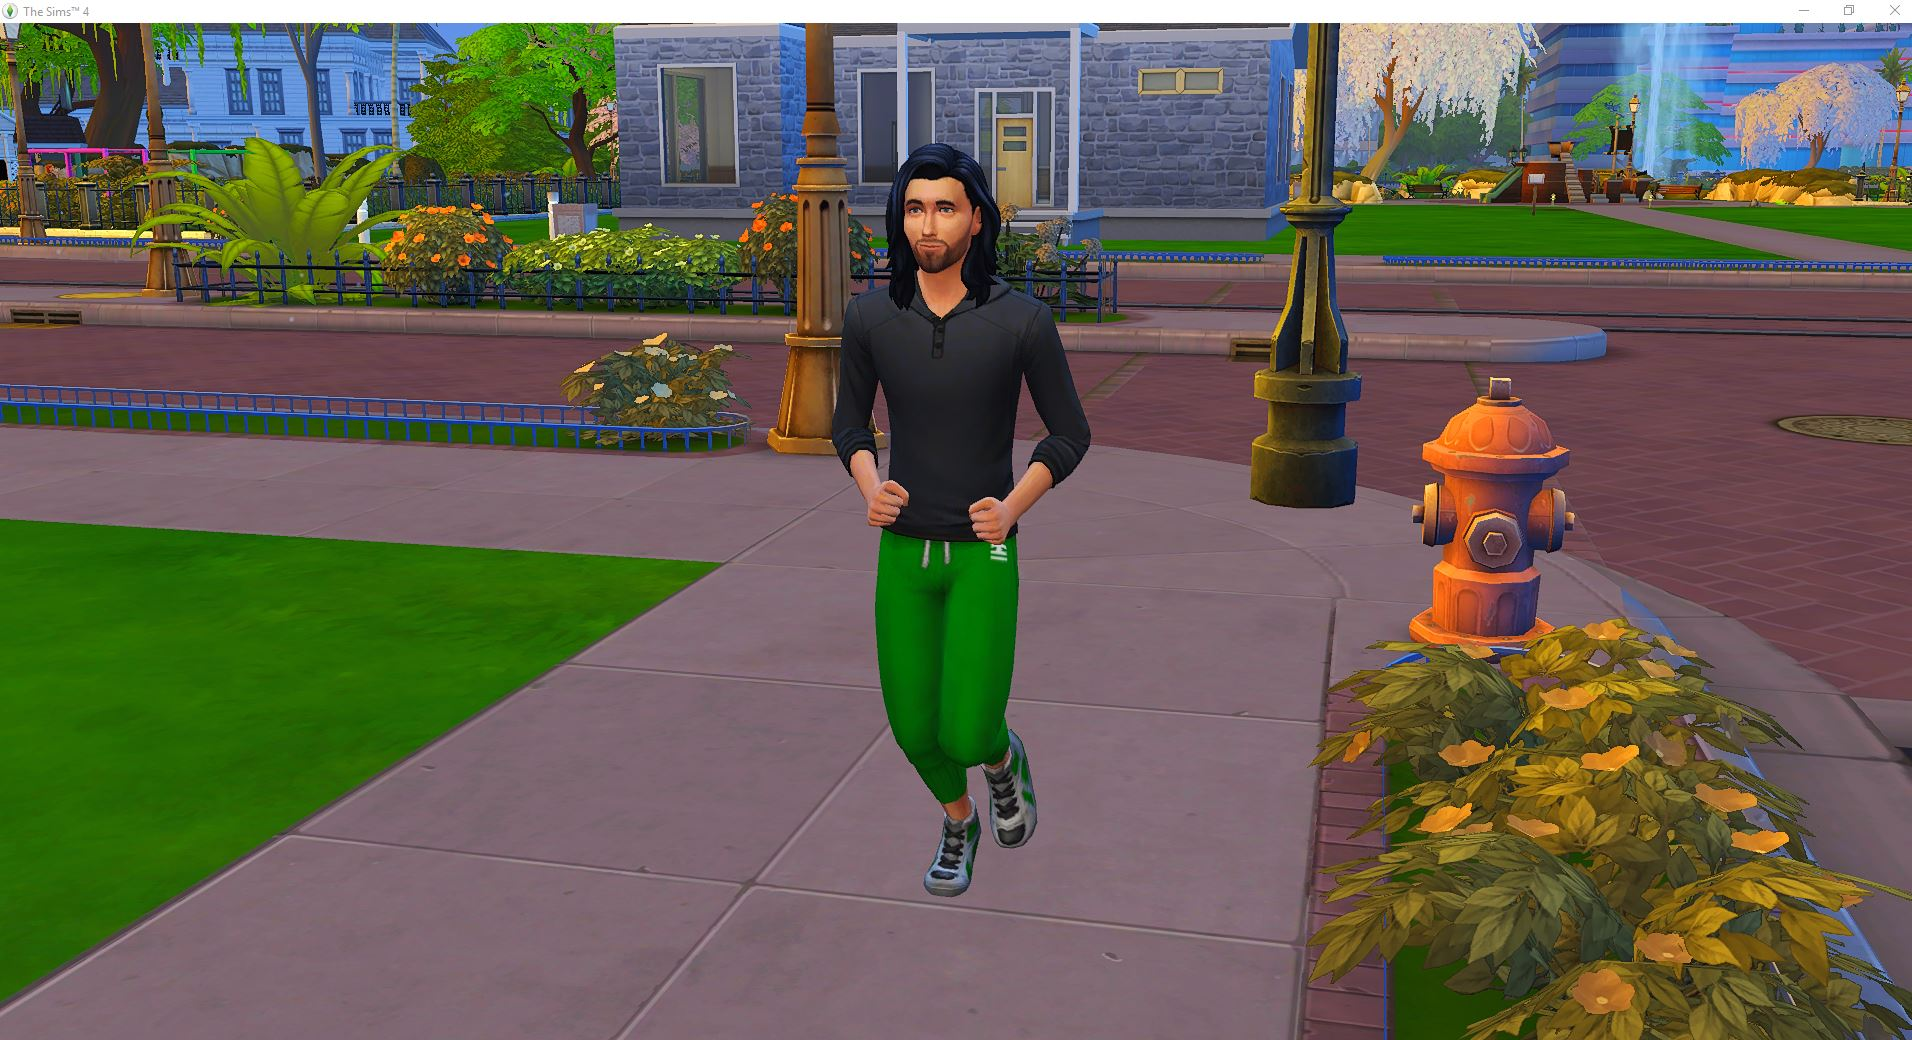 2019-01-08 19_05_35-The Sims™ 4